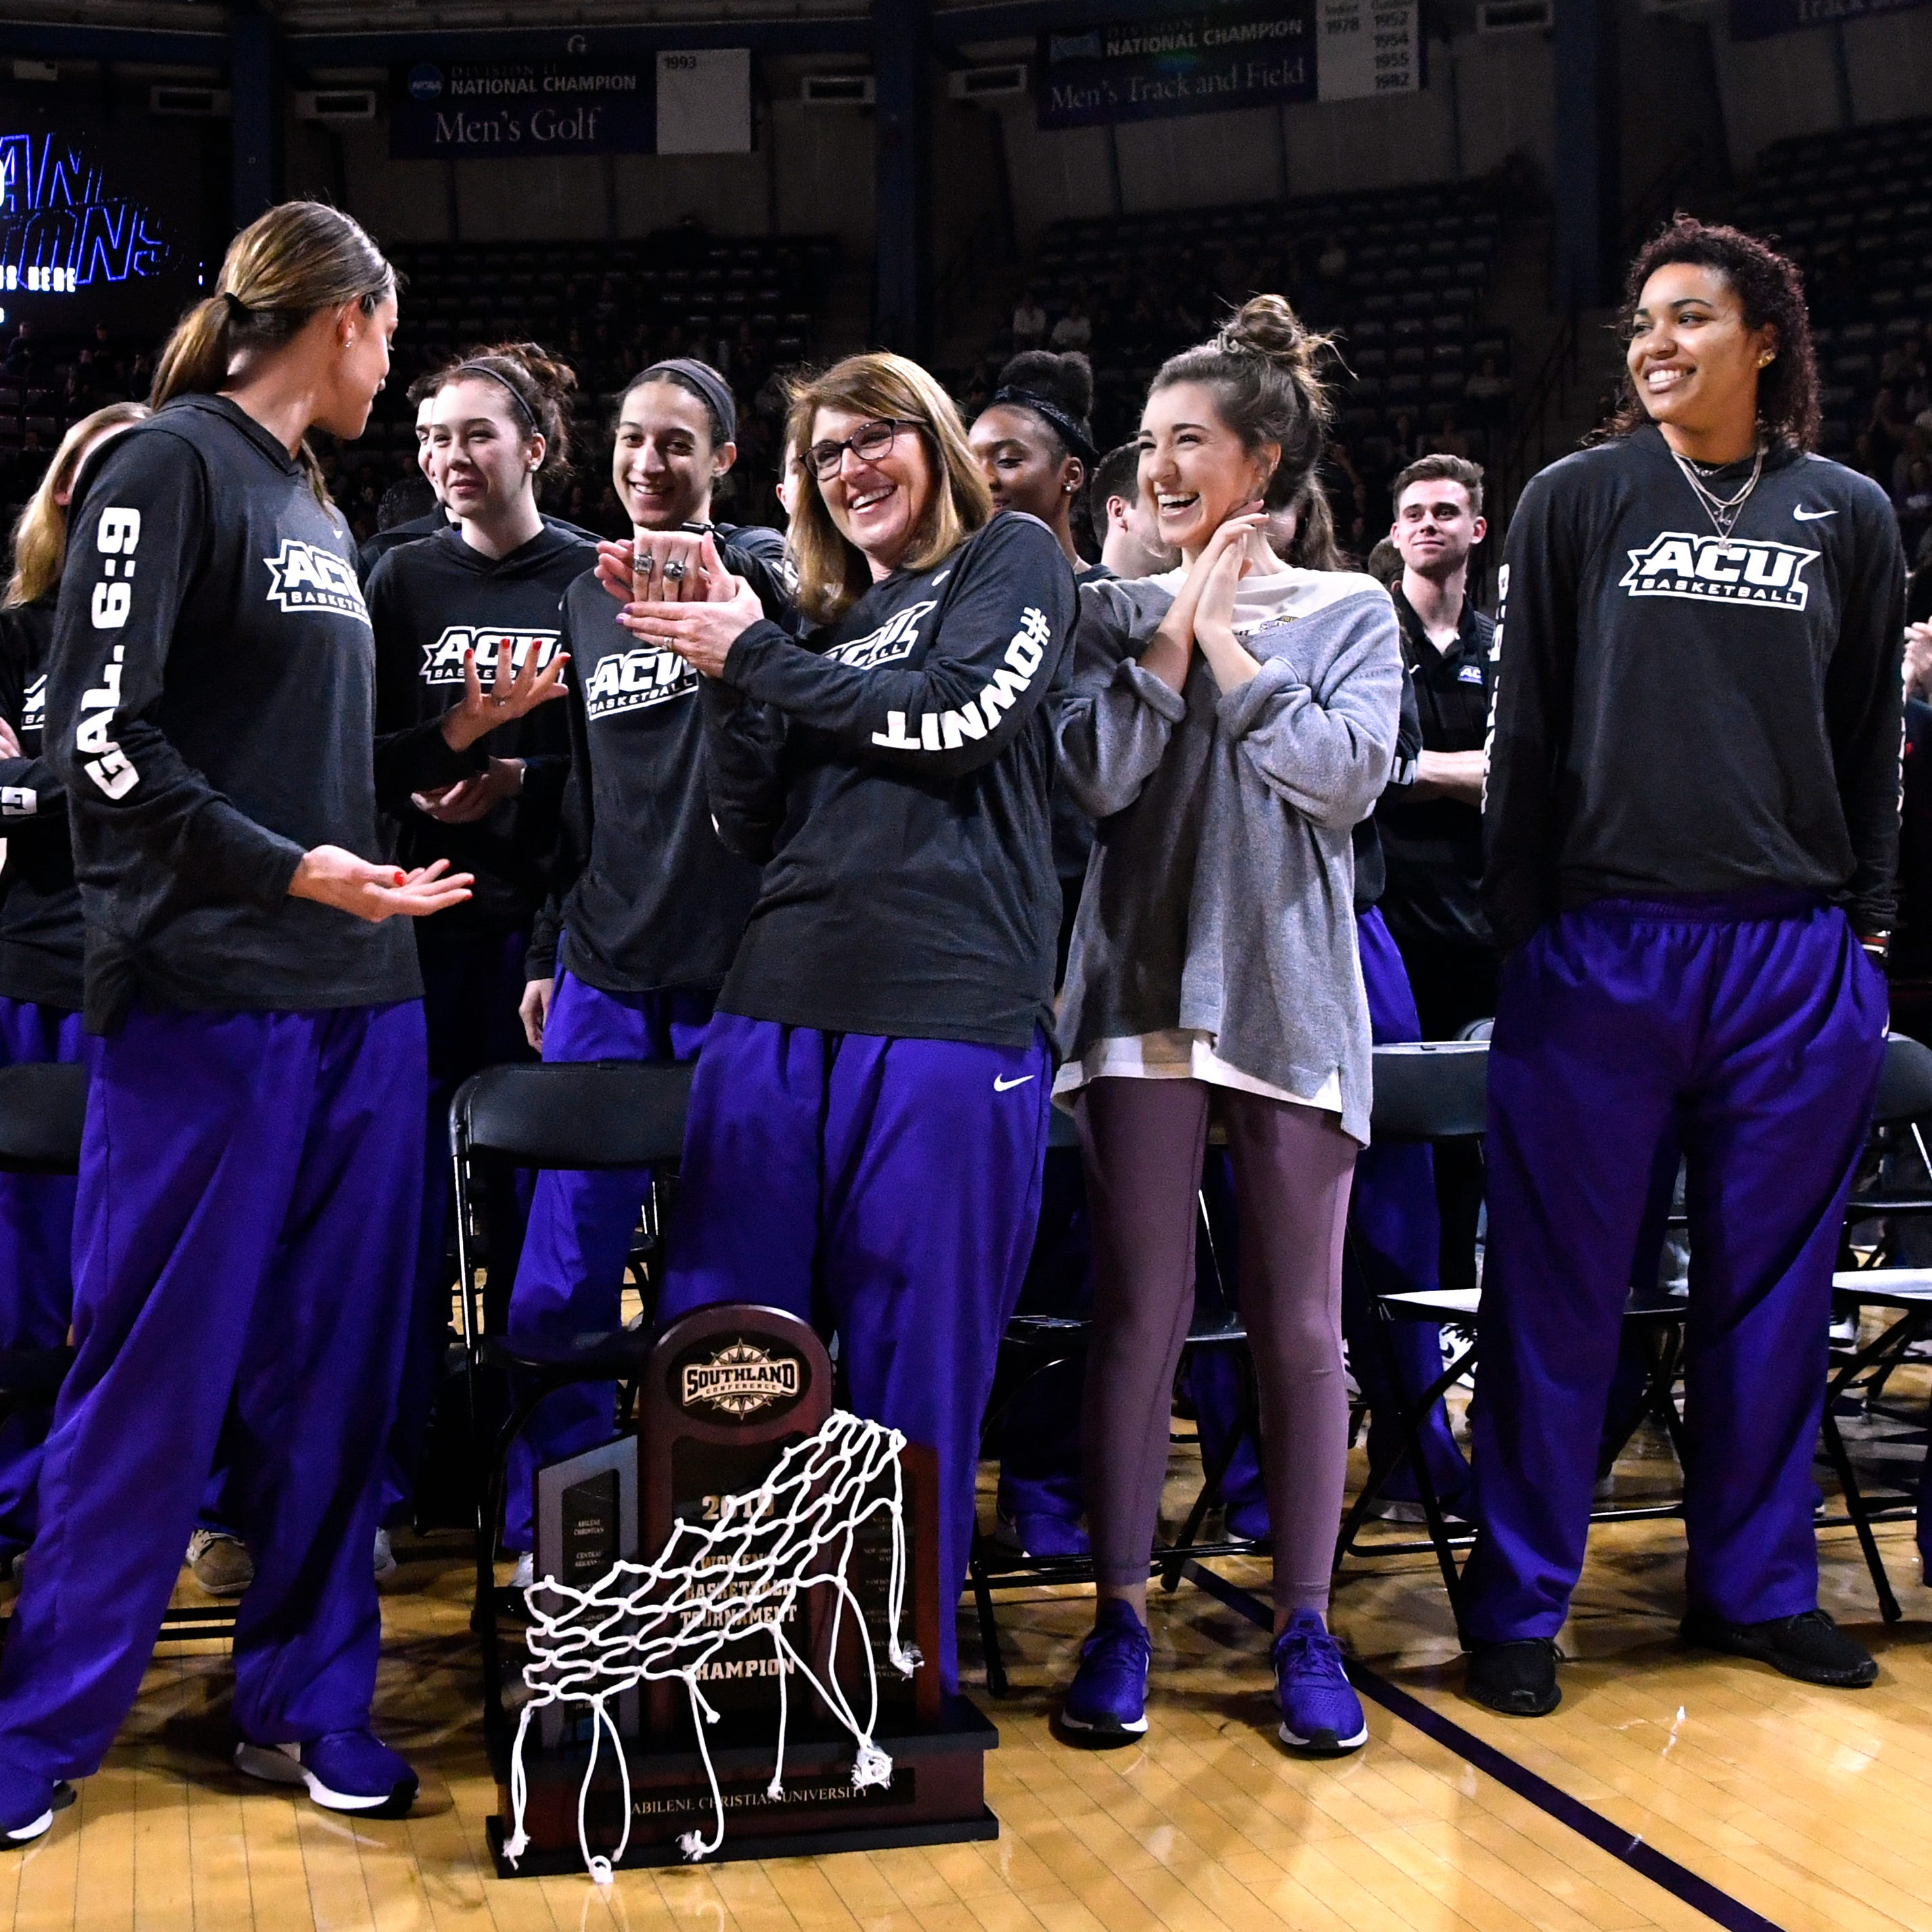 Pride, excitement as Abilene Christian University campus enjoys first tournament selection